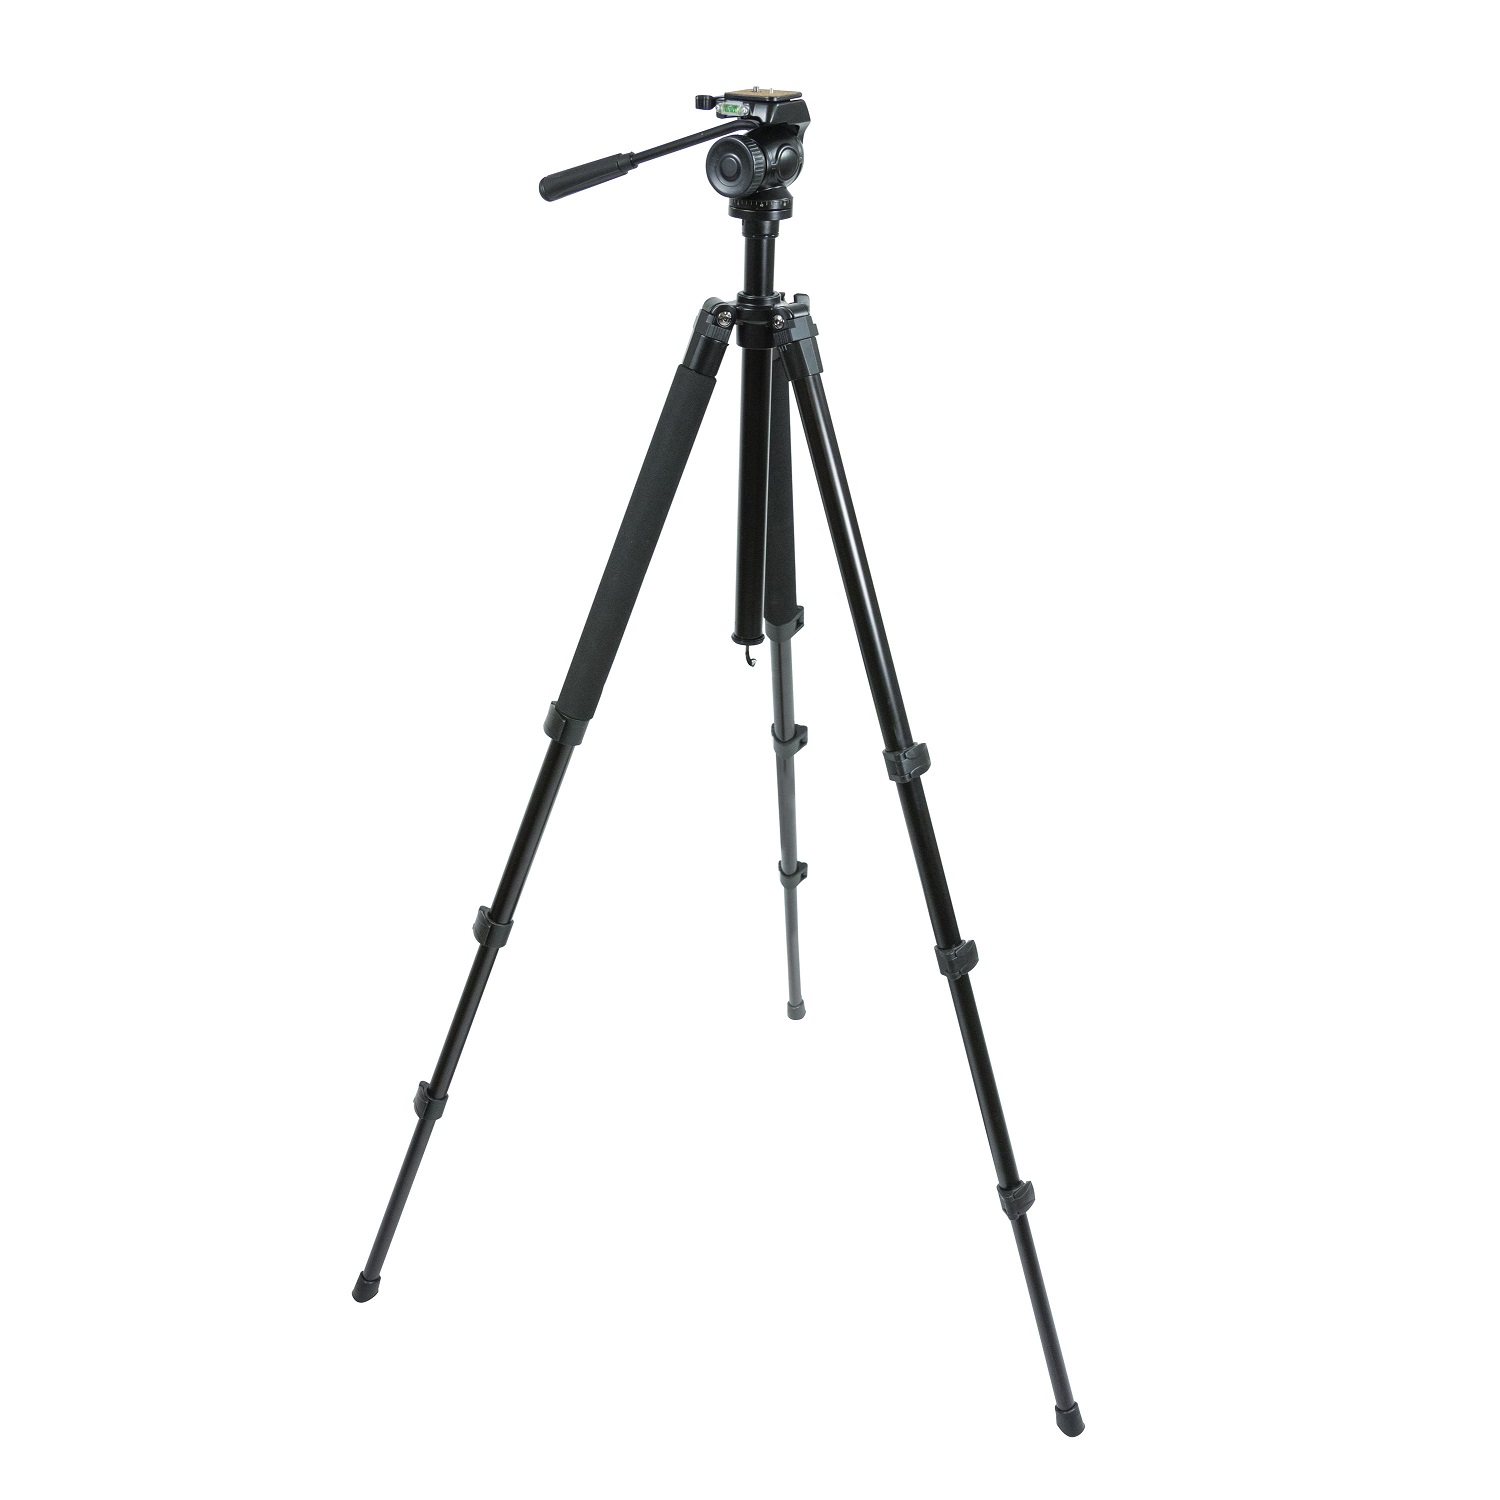 Celestron TrailSeeker Tripod Fluid Pan - Black